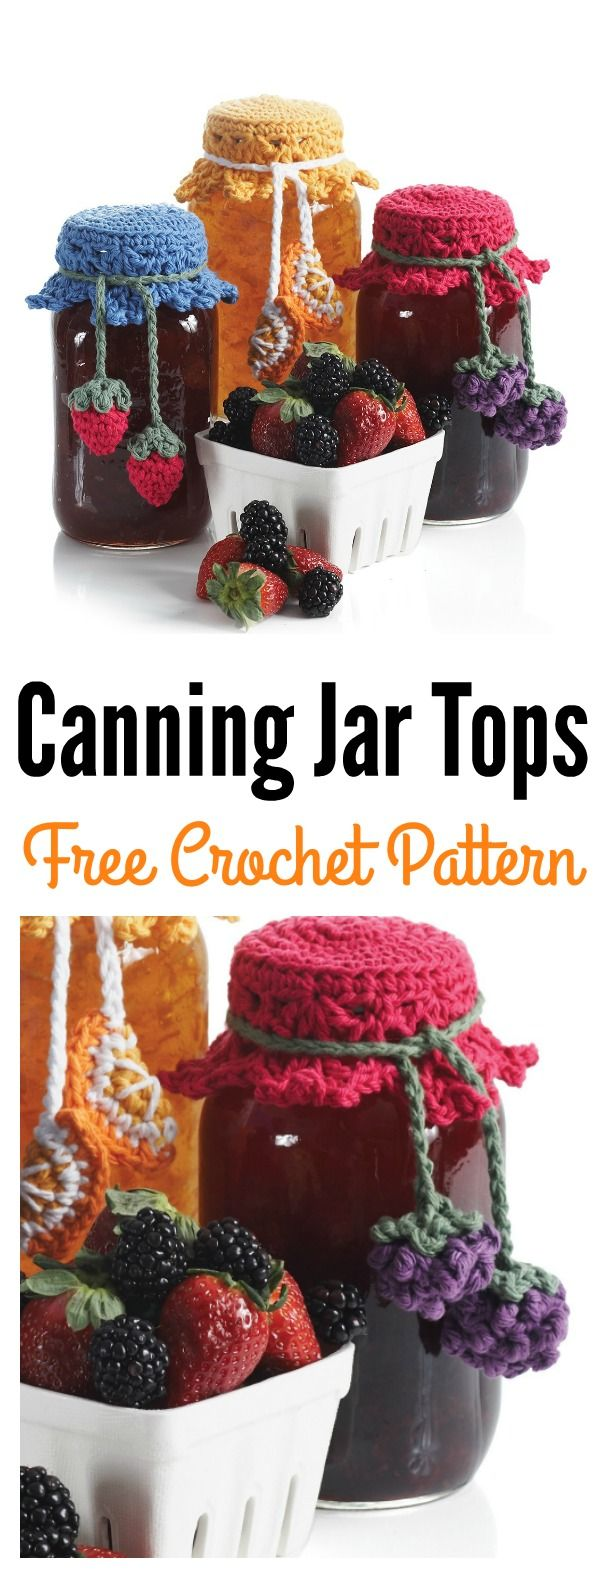 Canning Jar Tops Free Crochet Pattern